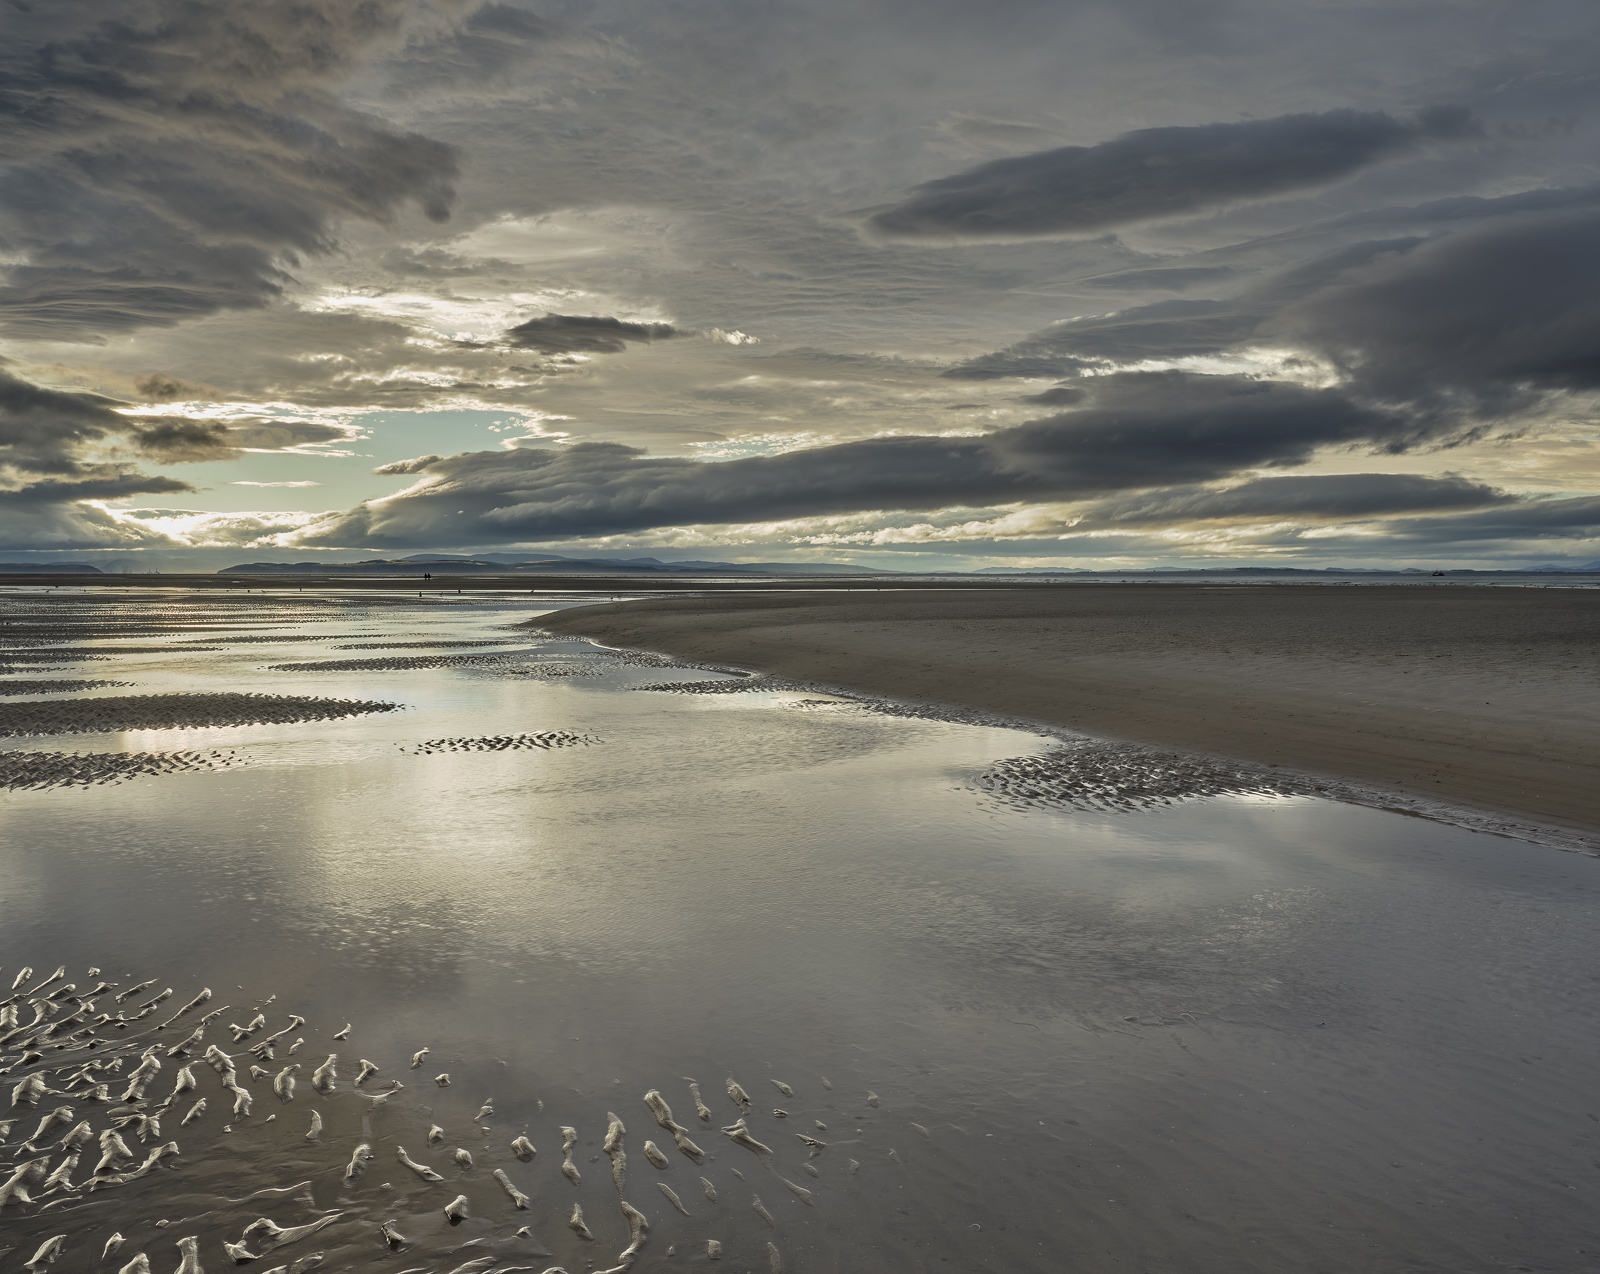 Scintillating Findhorn, Findhorn, Moray, Scotland, awesome, multi-layered, cloud, sunset, steely blue, tan, sand, ripple, photo